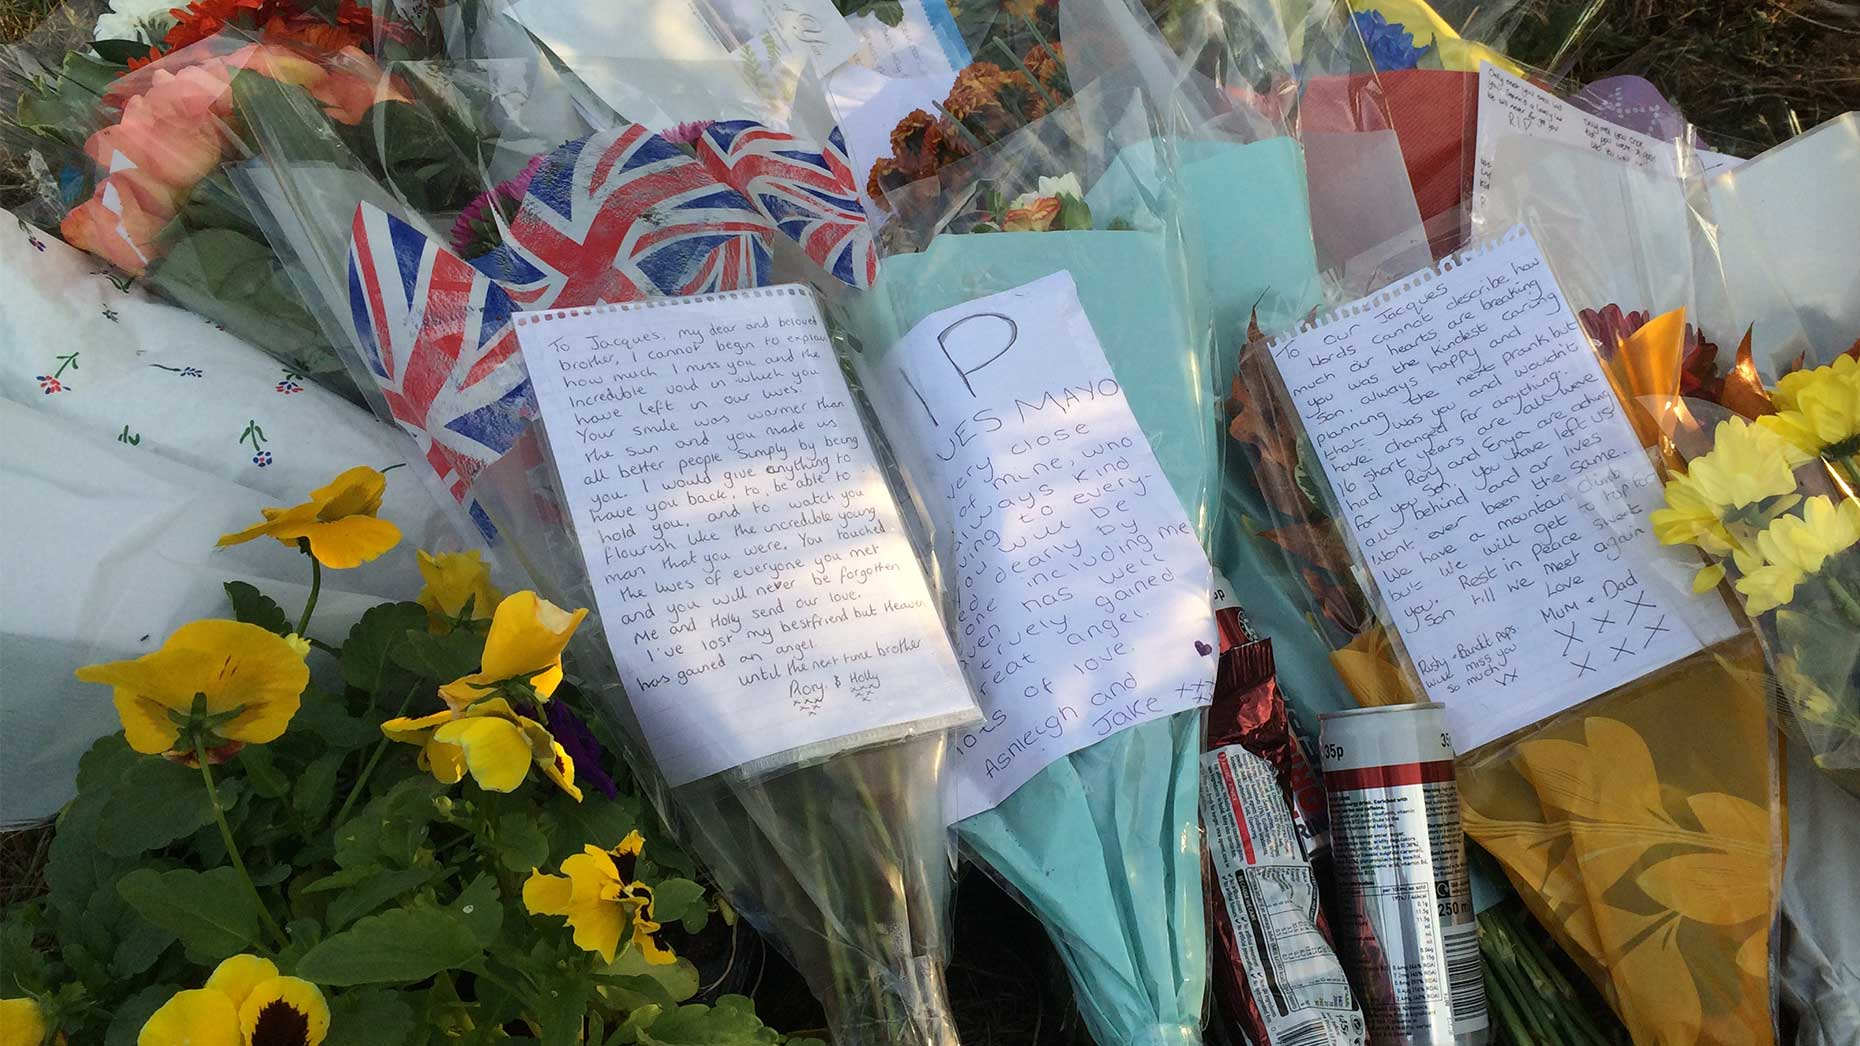 Tributes to Jacques Mayo at the site of the crash